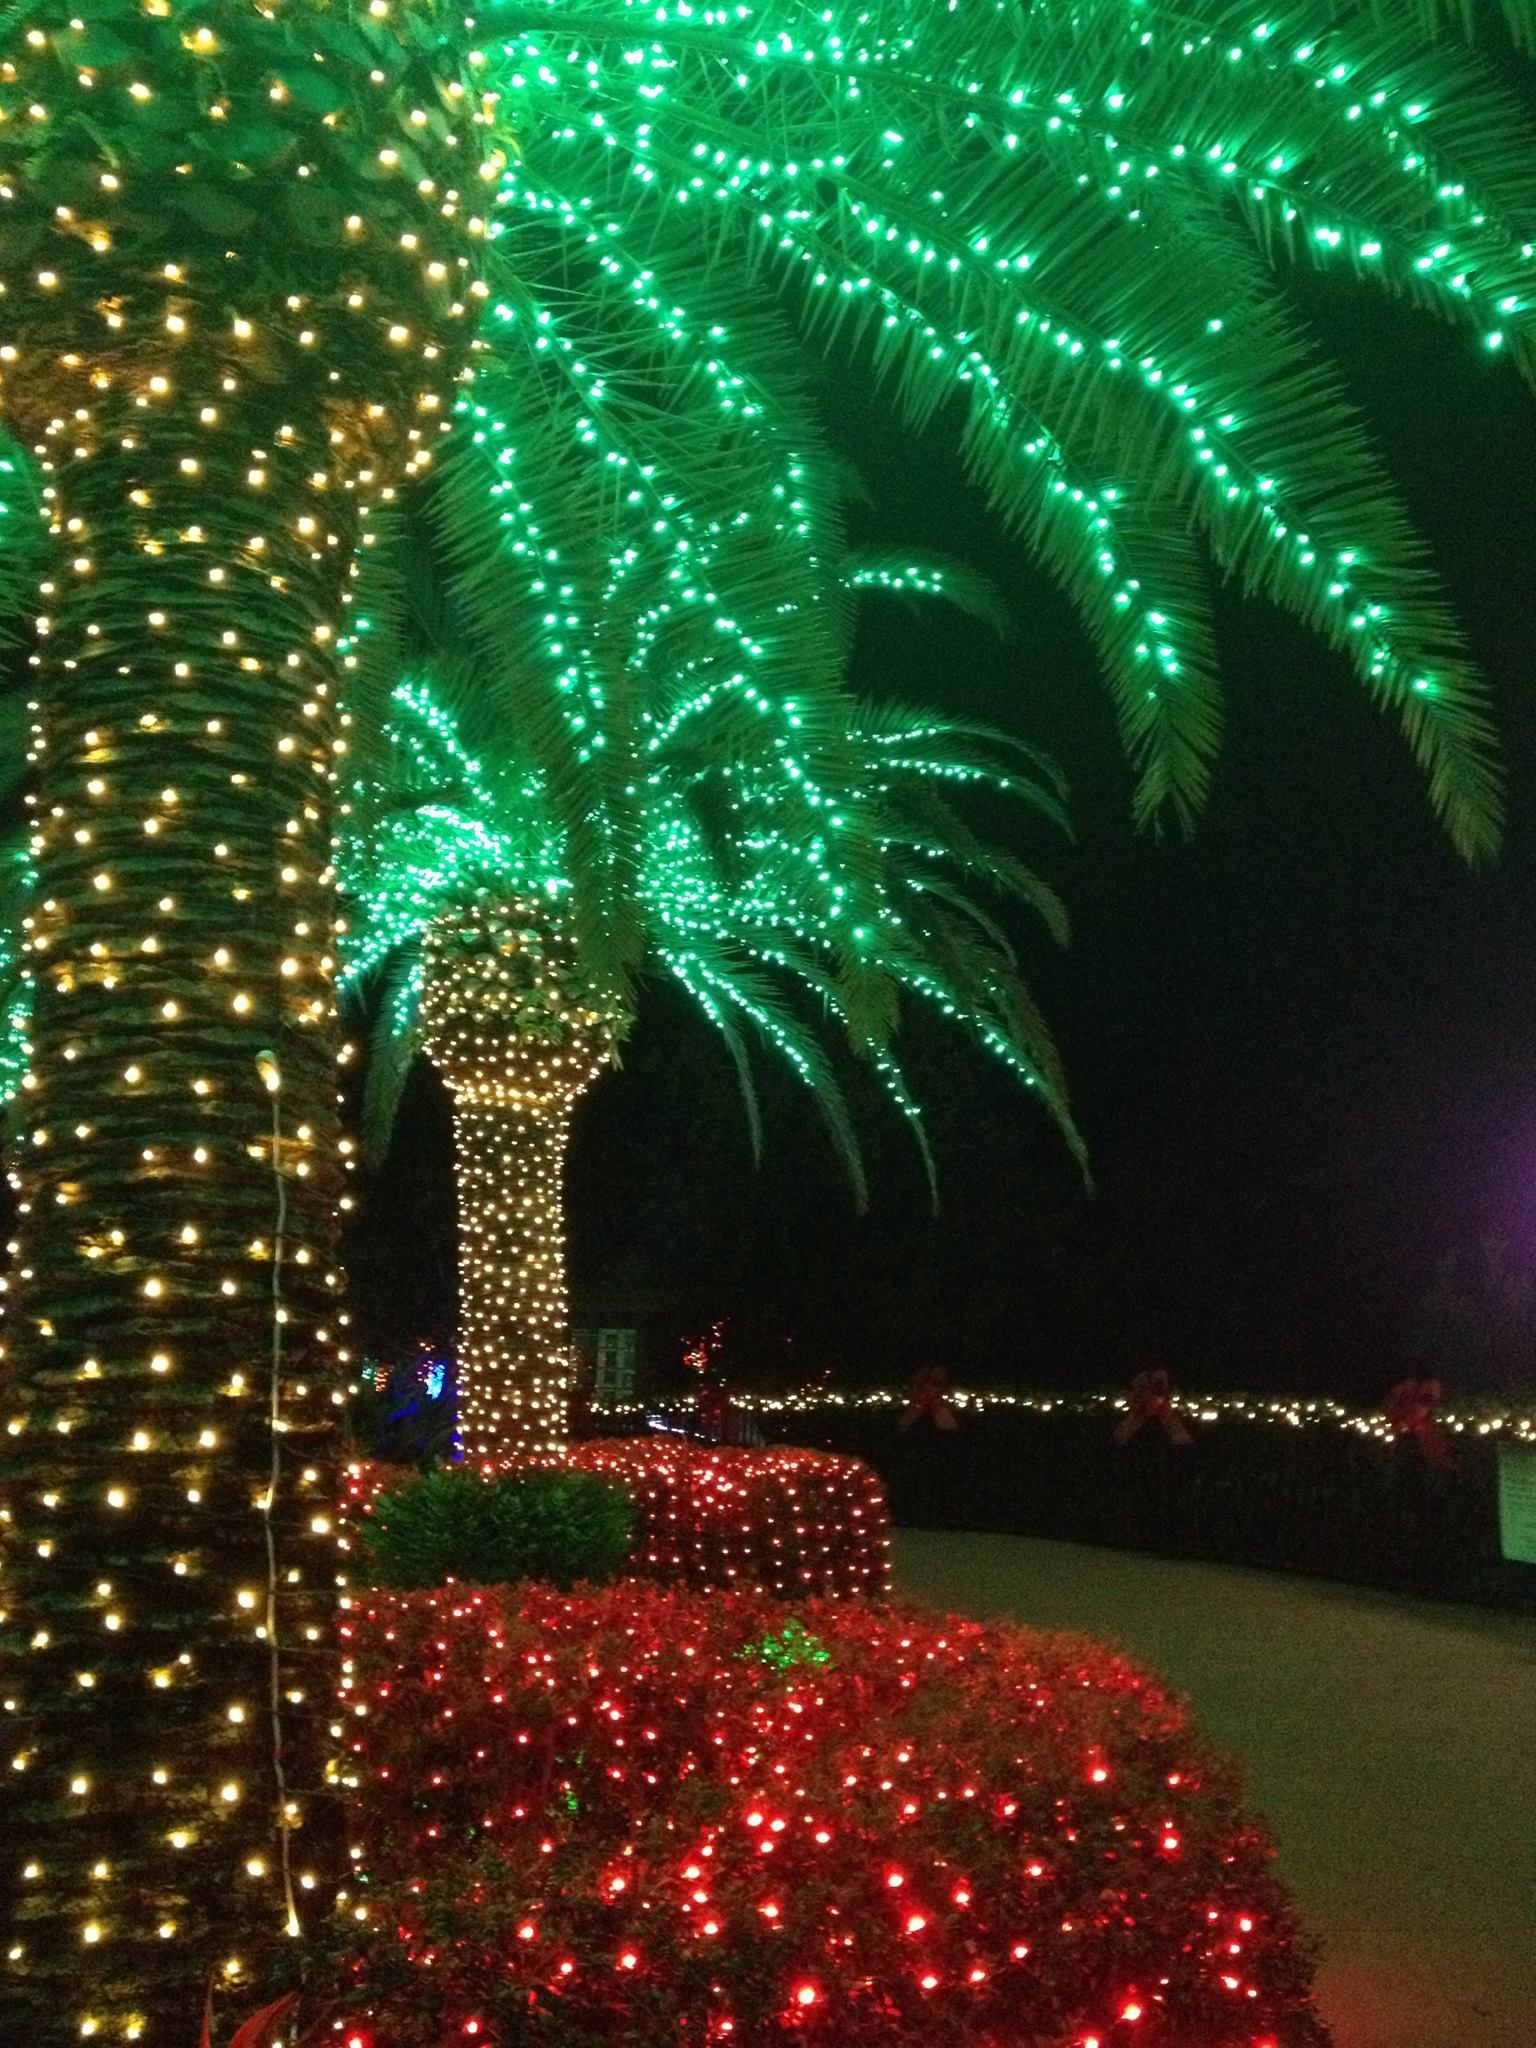 the way lights were supposed to be used on palm trees